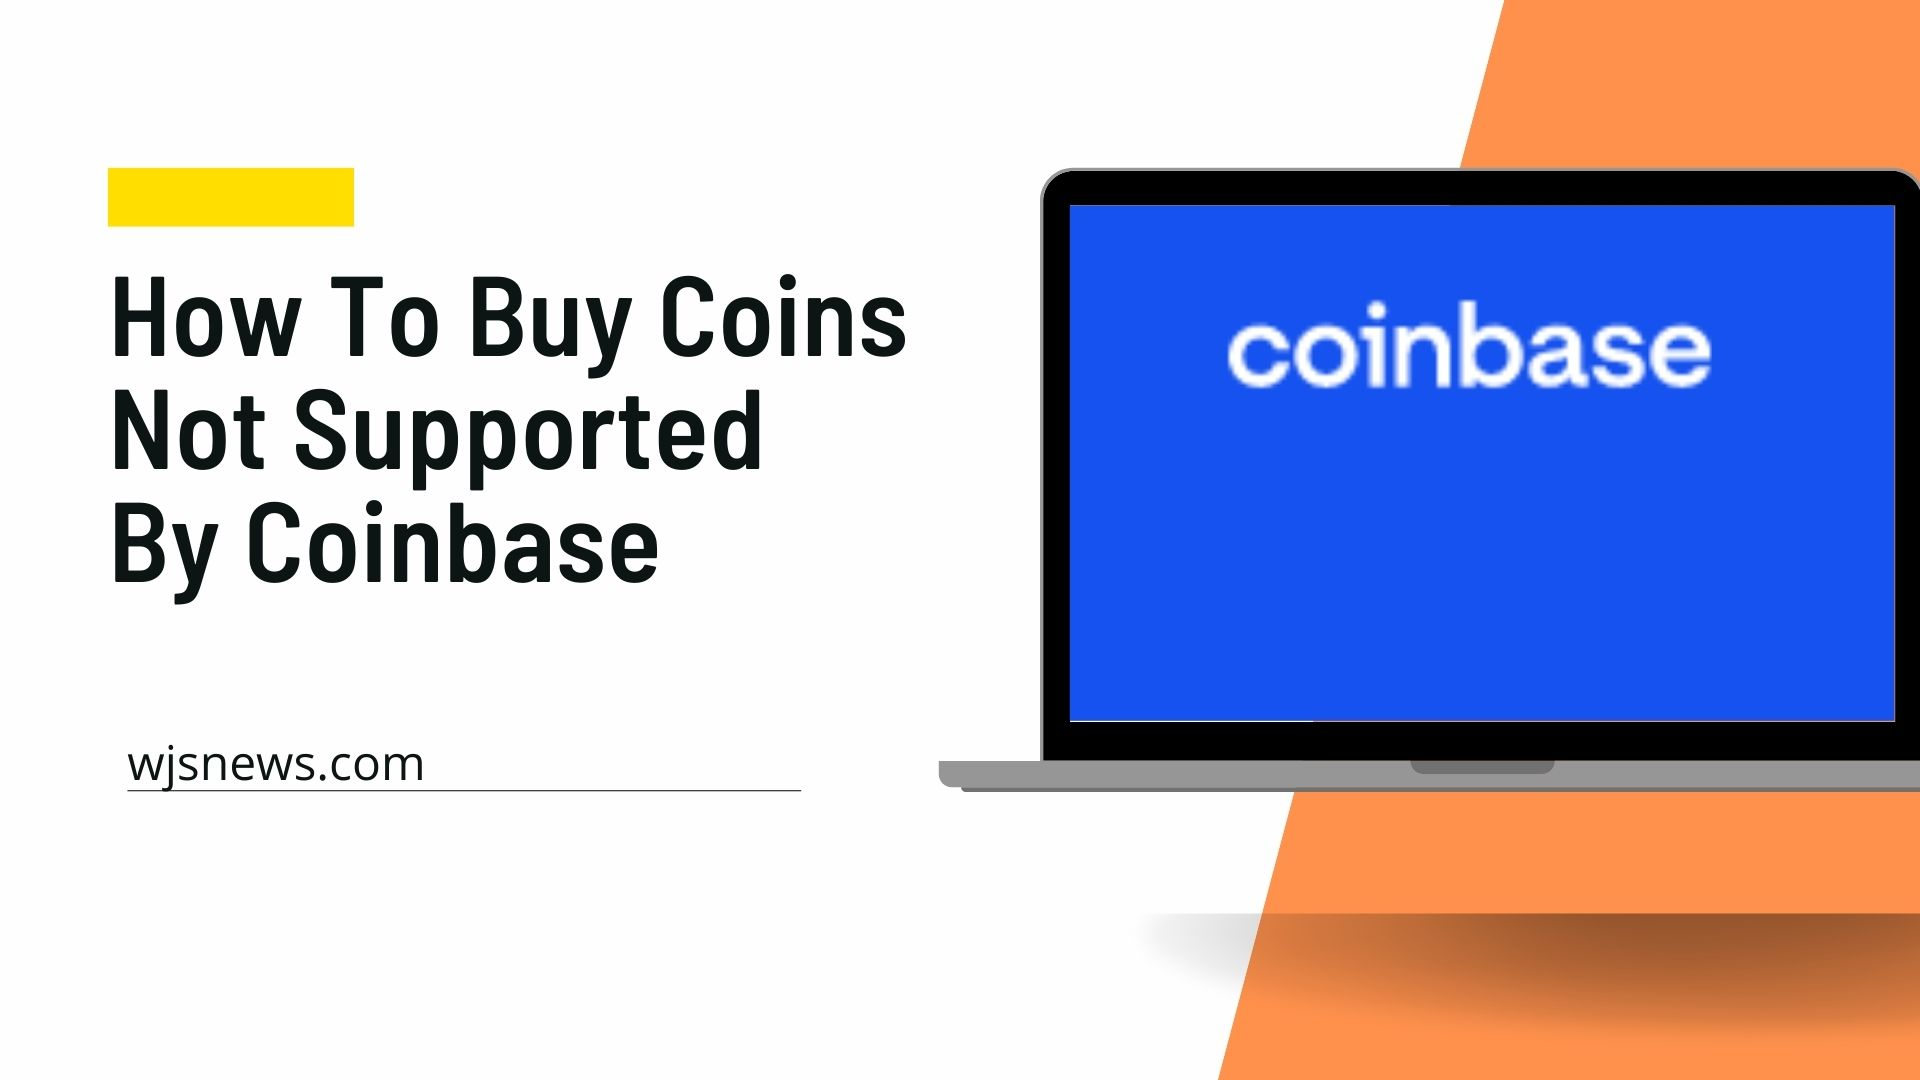 How To Buy Coins Not Supported By Coinbase